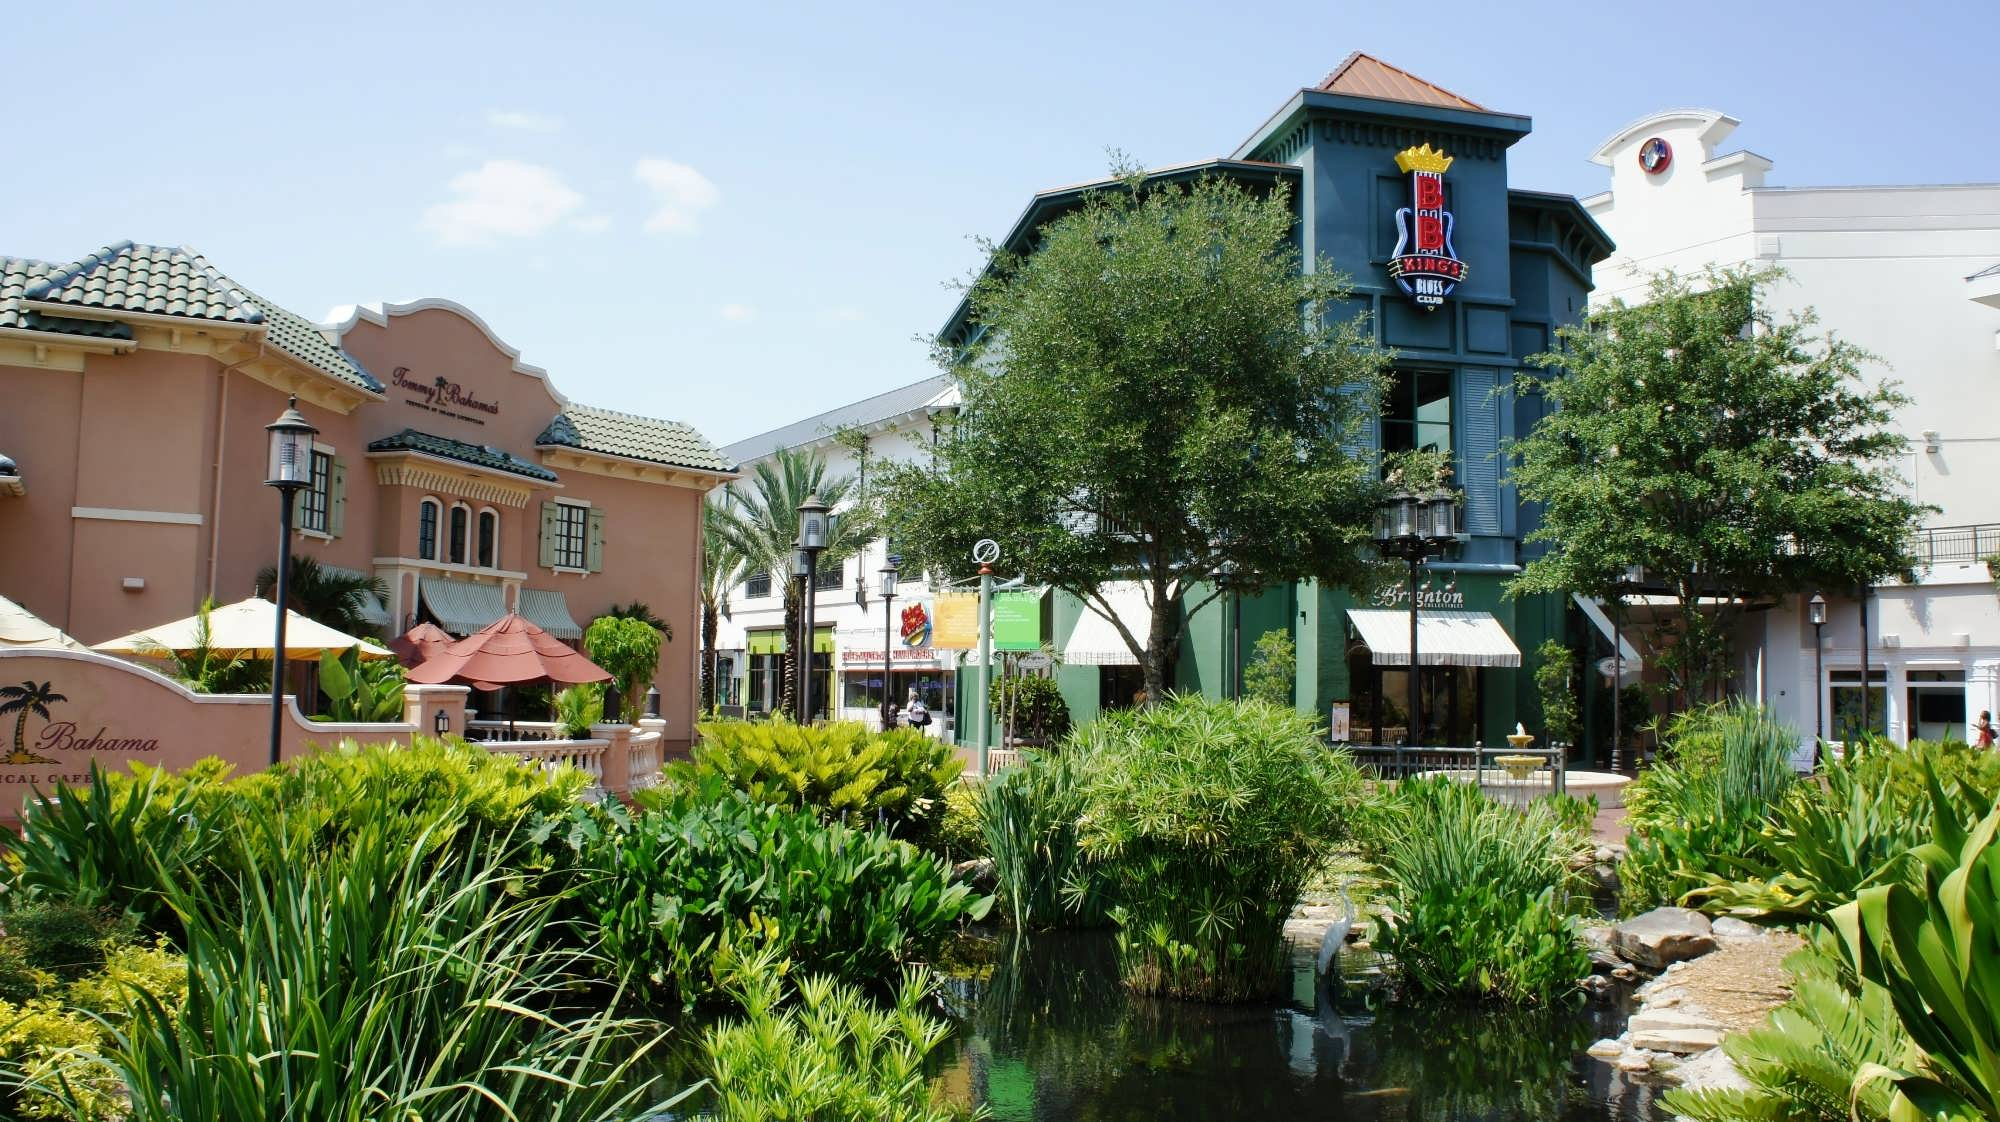 Pointe Orlando Distinctive shopping dining and entertainment in the heart of International Drive